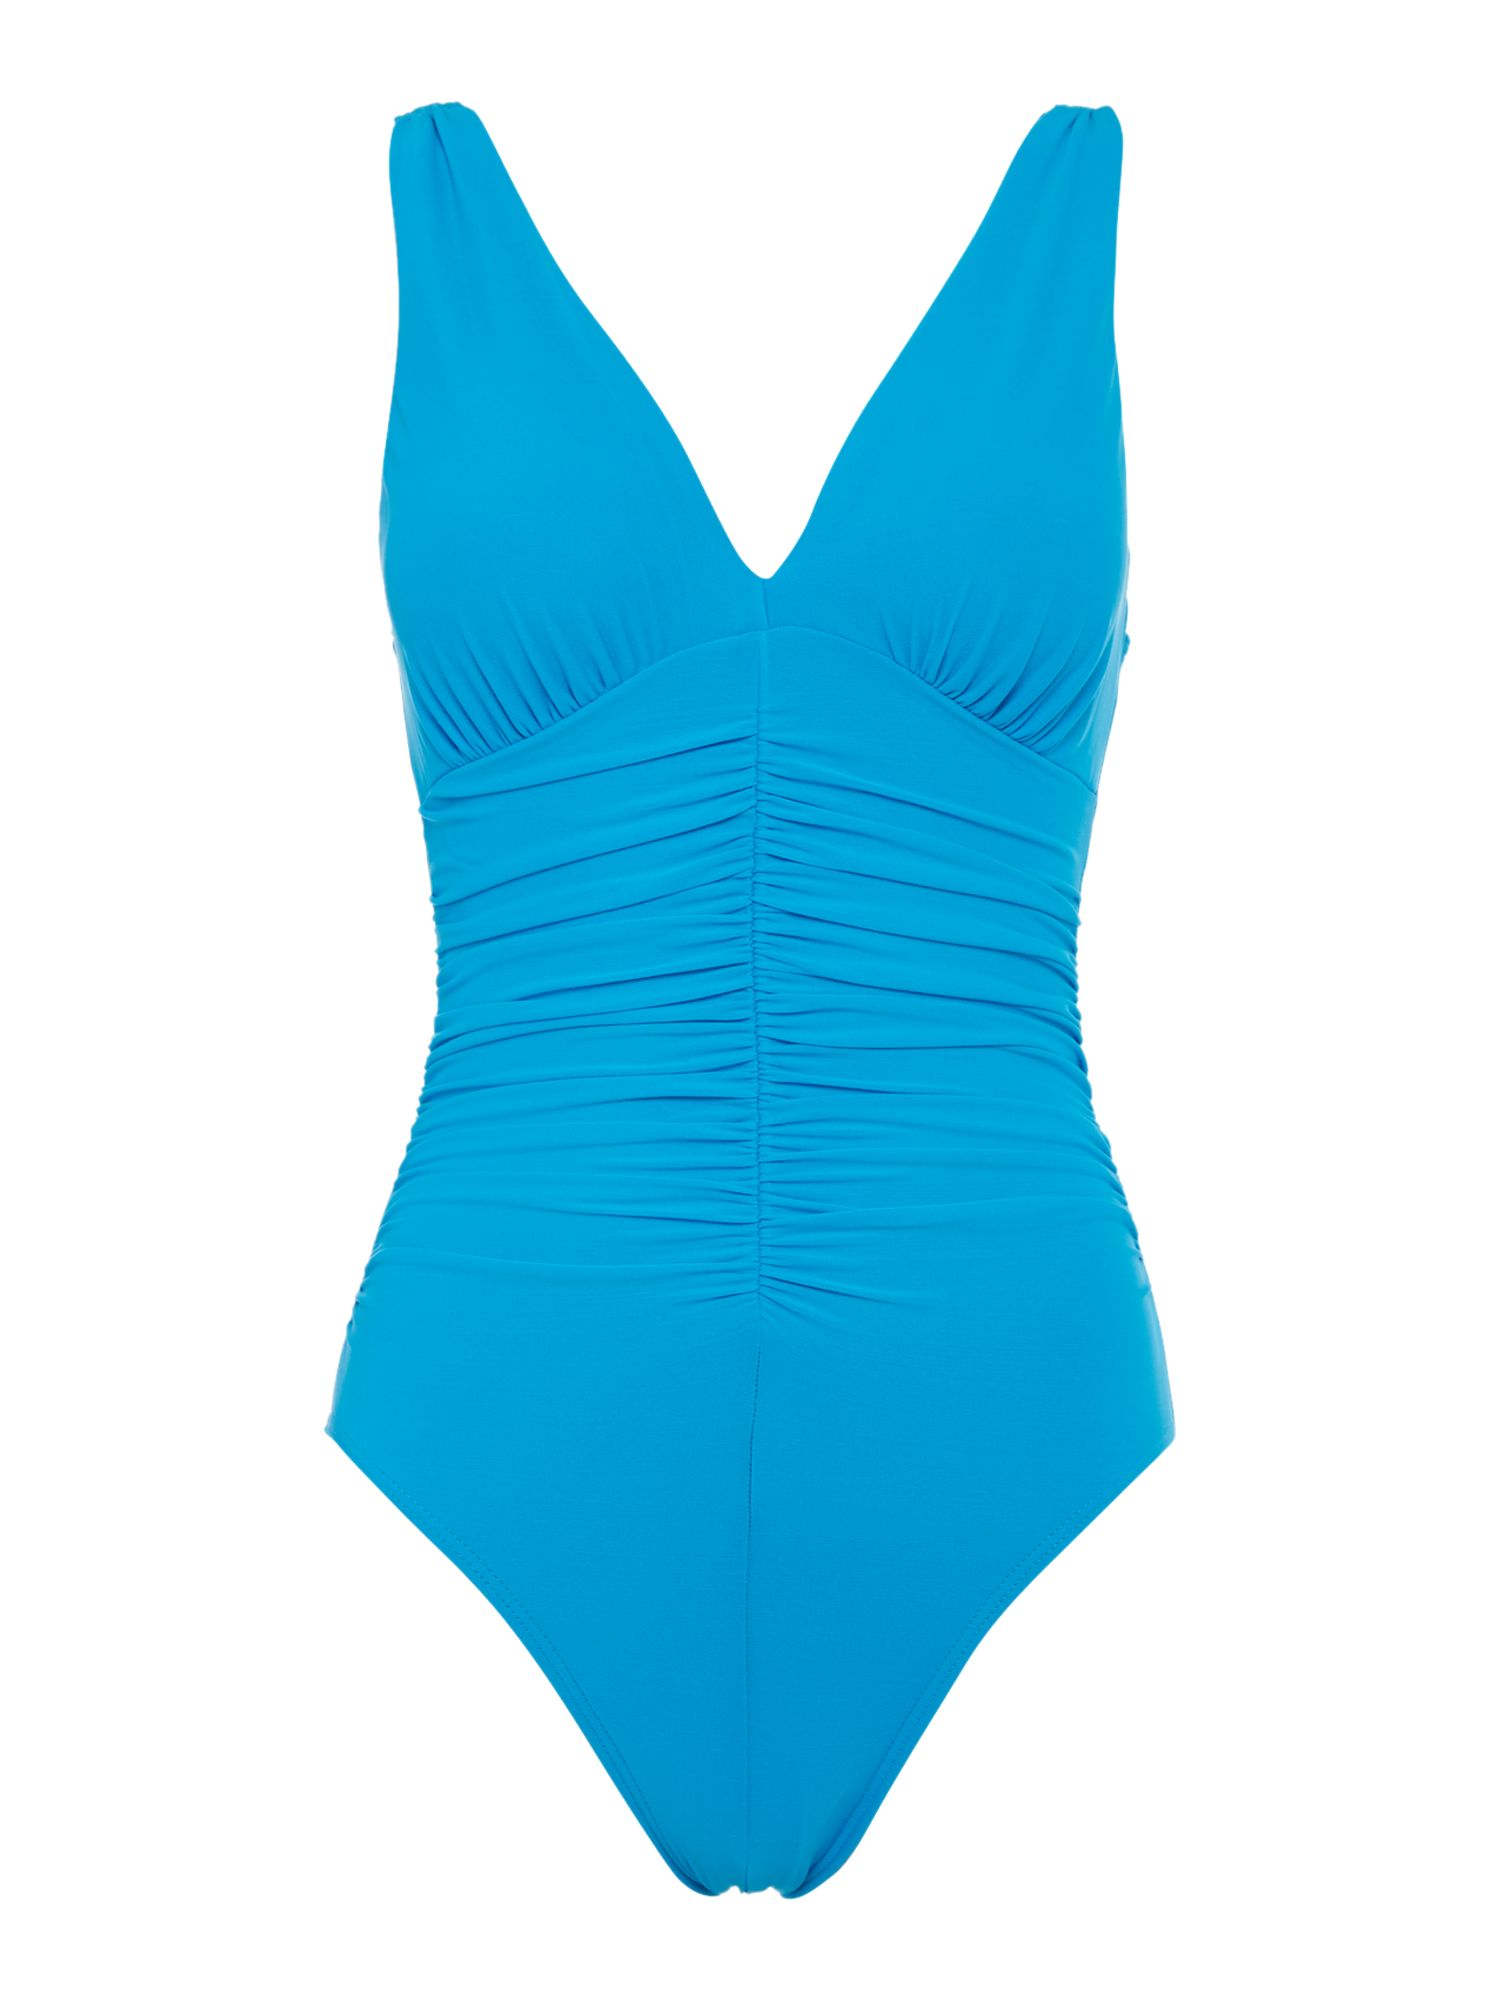 Sonita triangle cup swimsuit